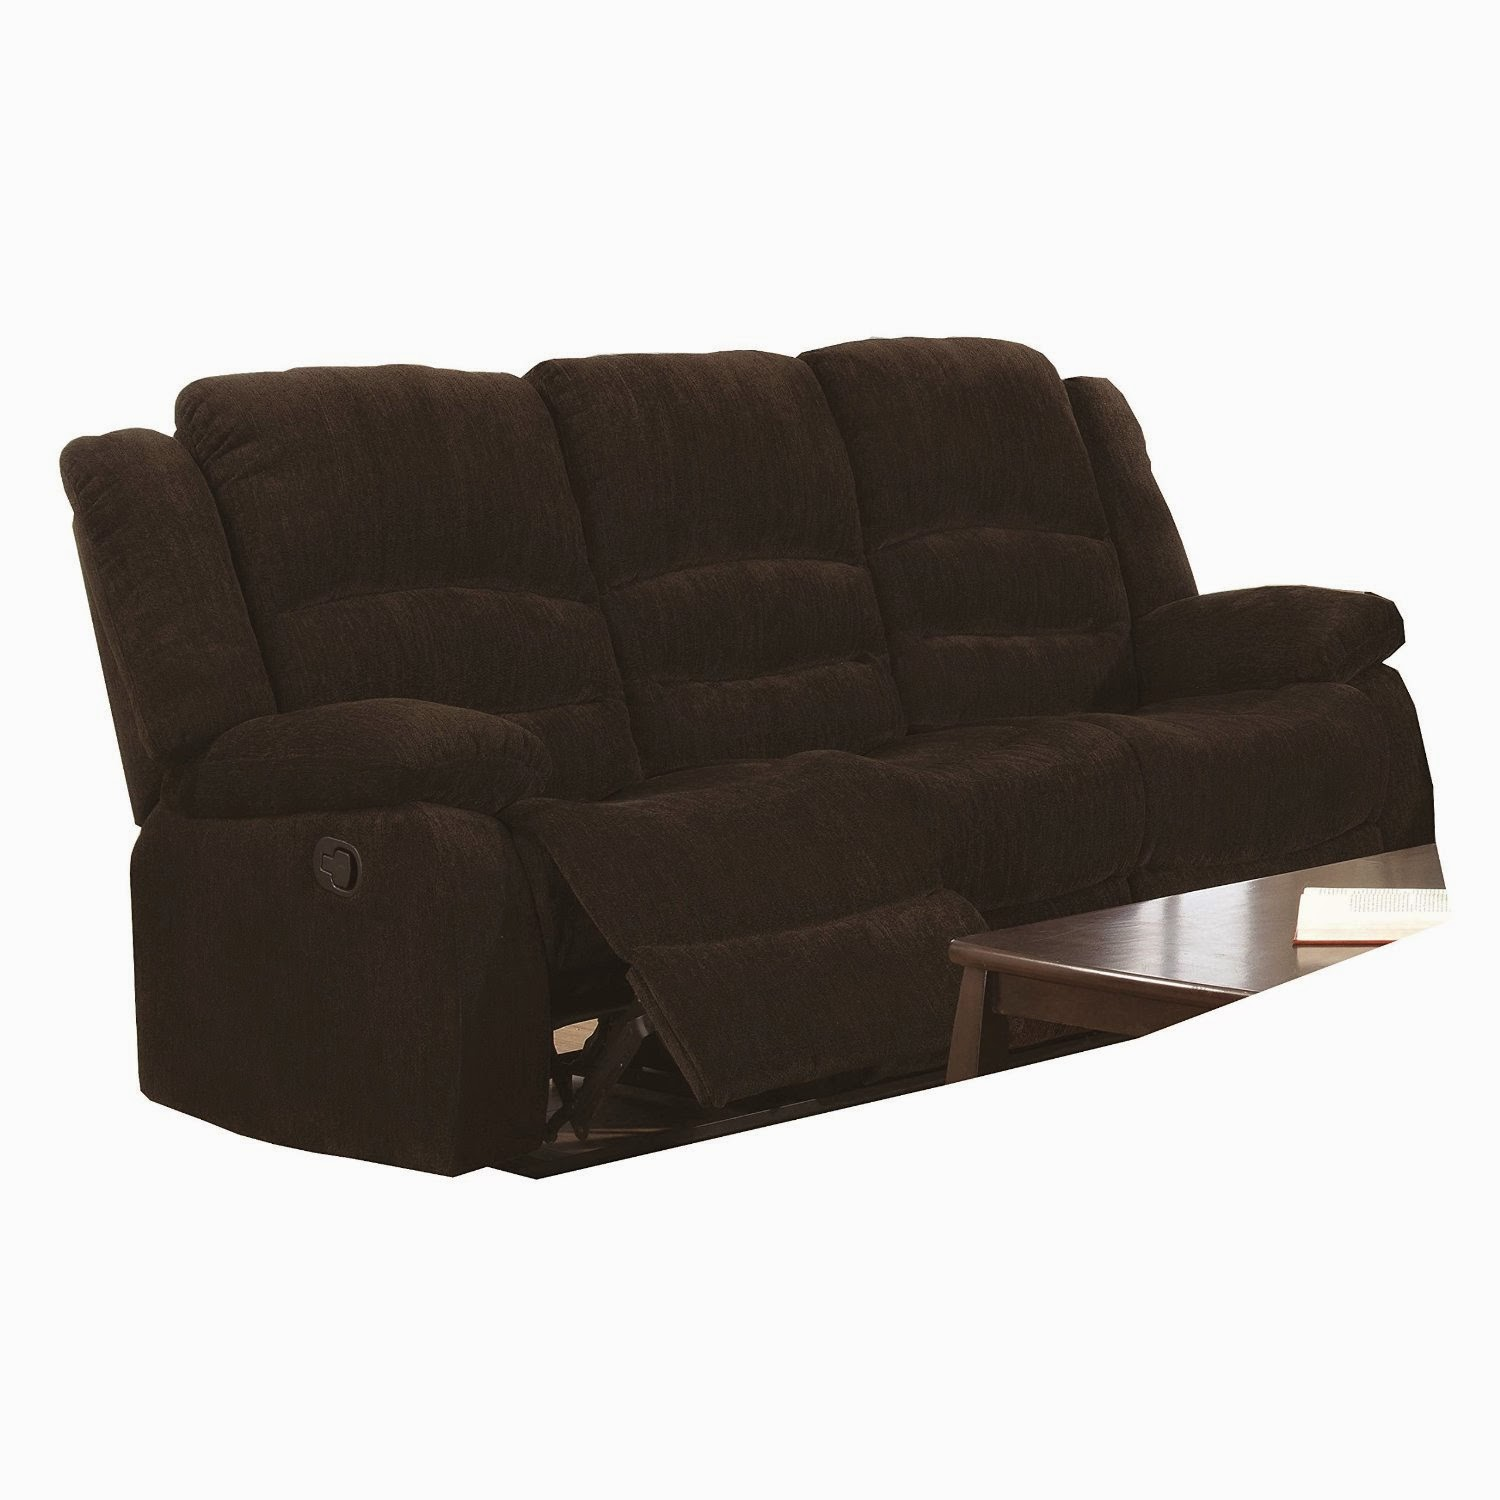 Cheap recliner sofas for sale triple reclining sofa fabric Loveseats with console